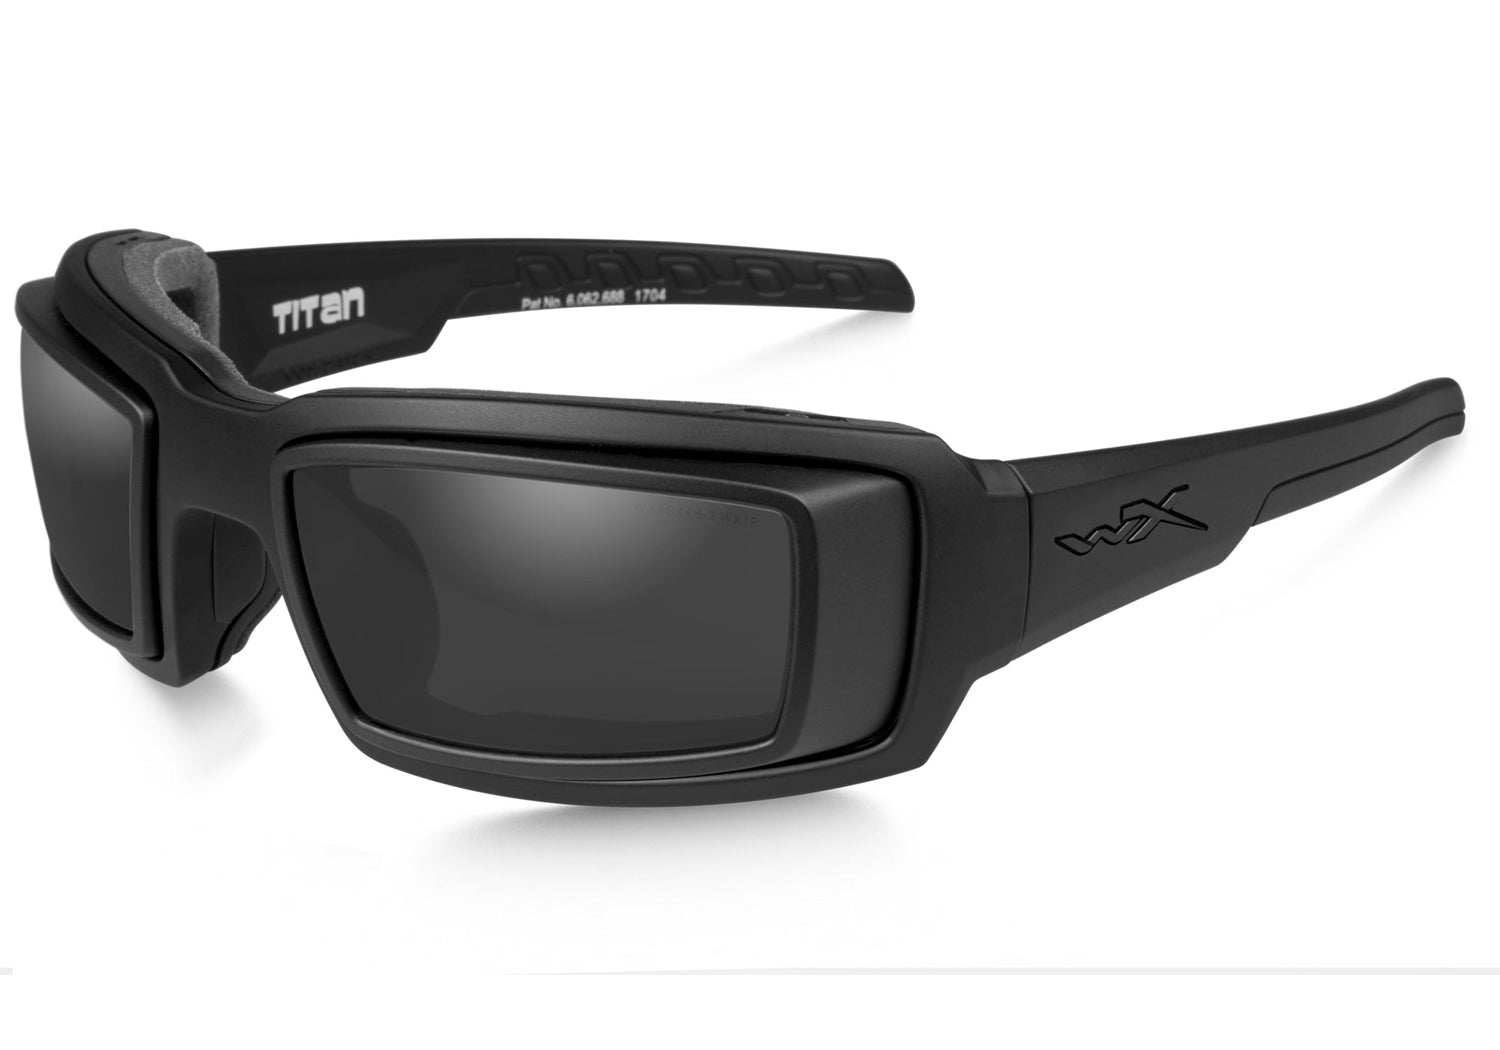 Wiley X Titan Prescription Sunglasses